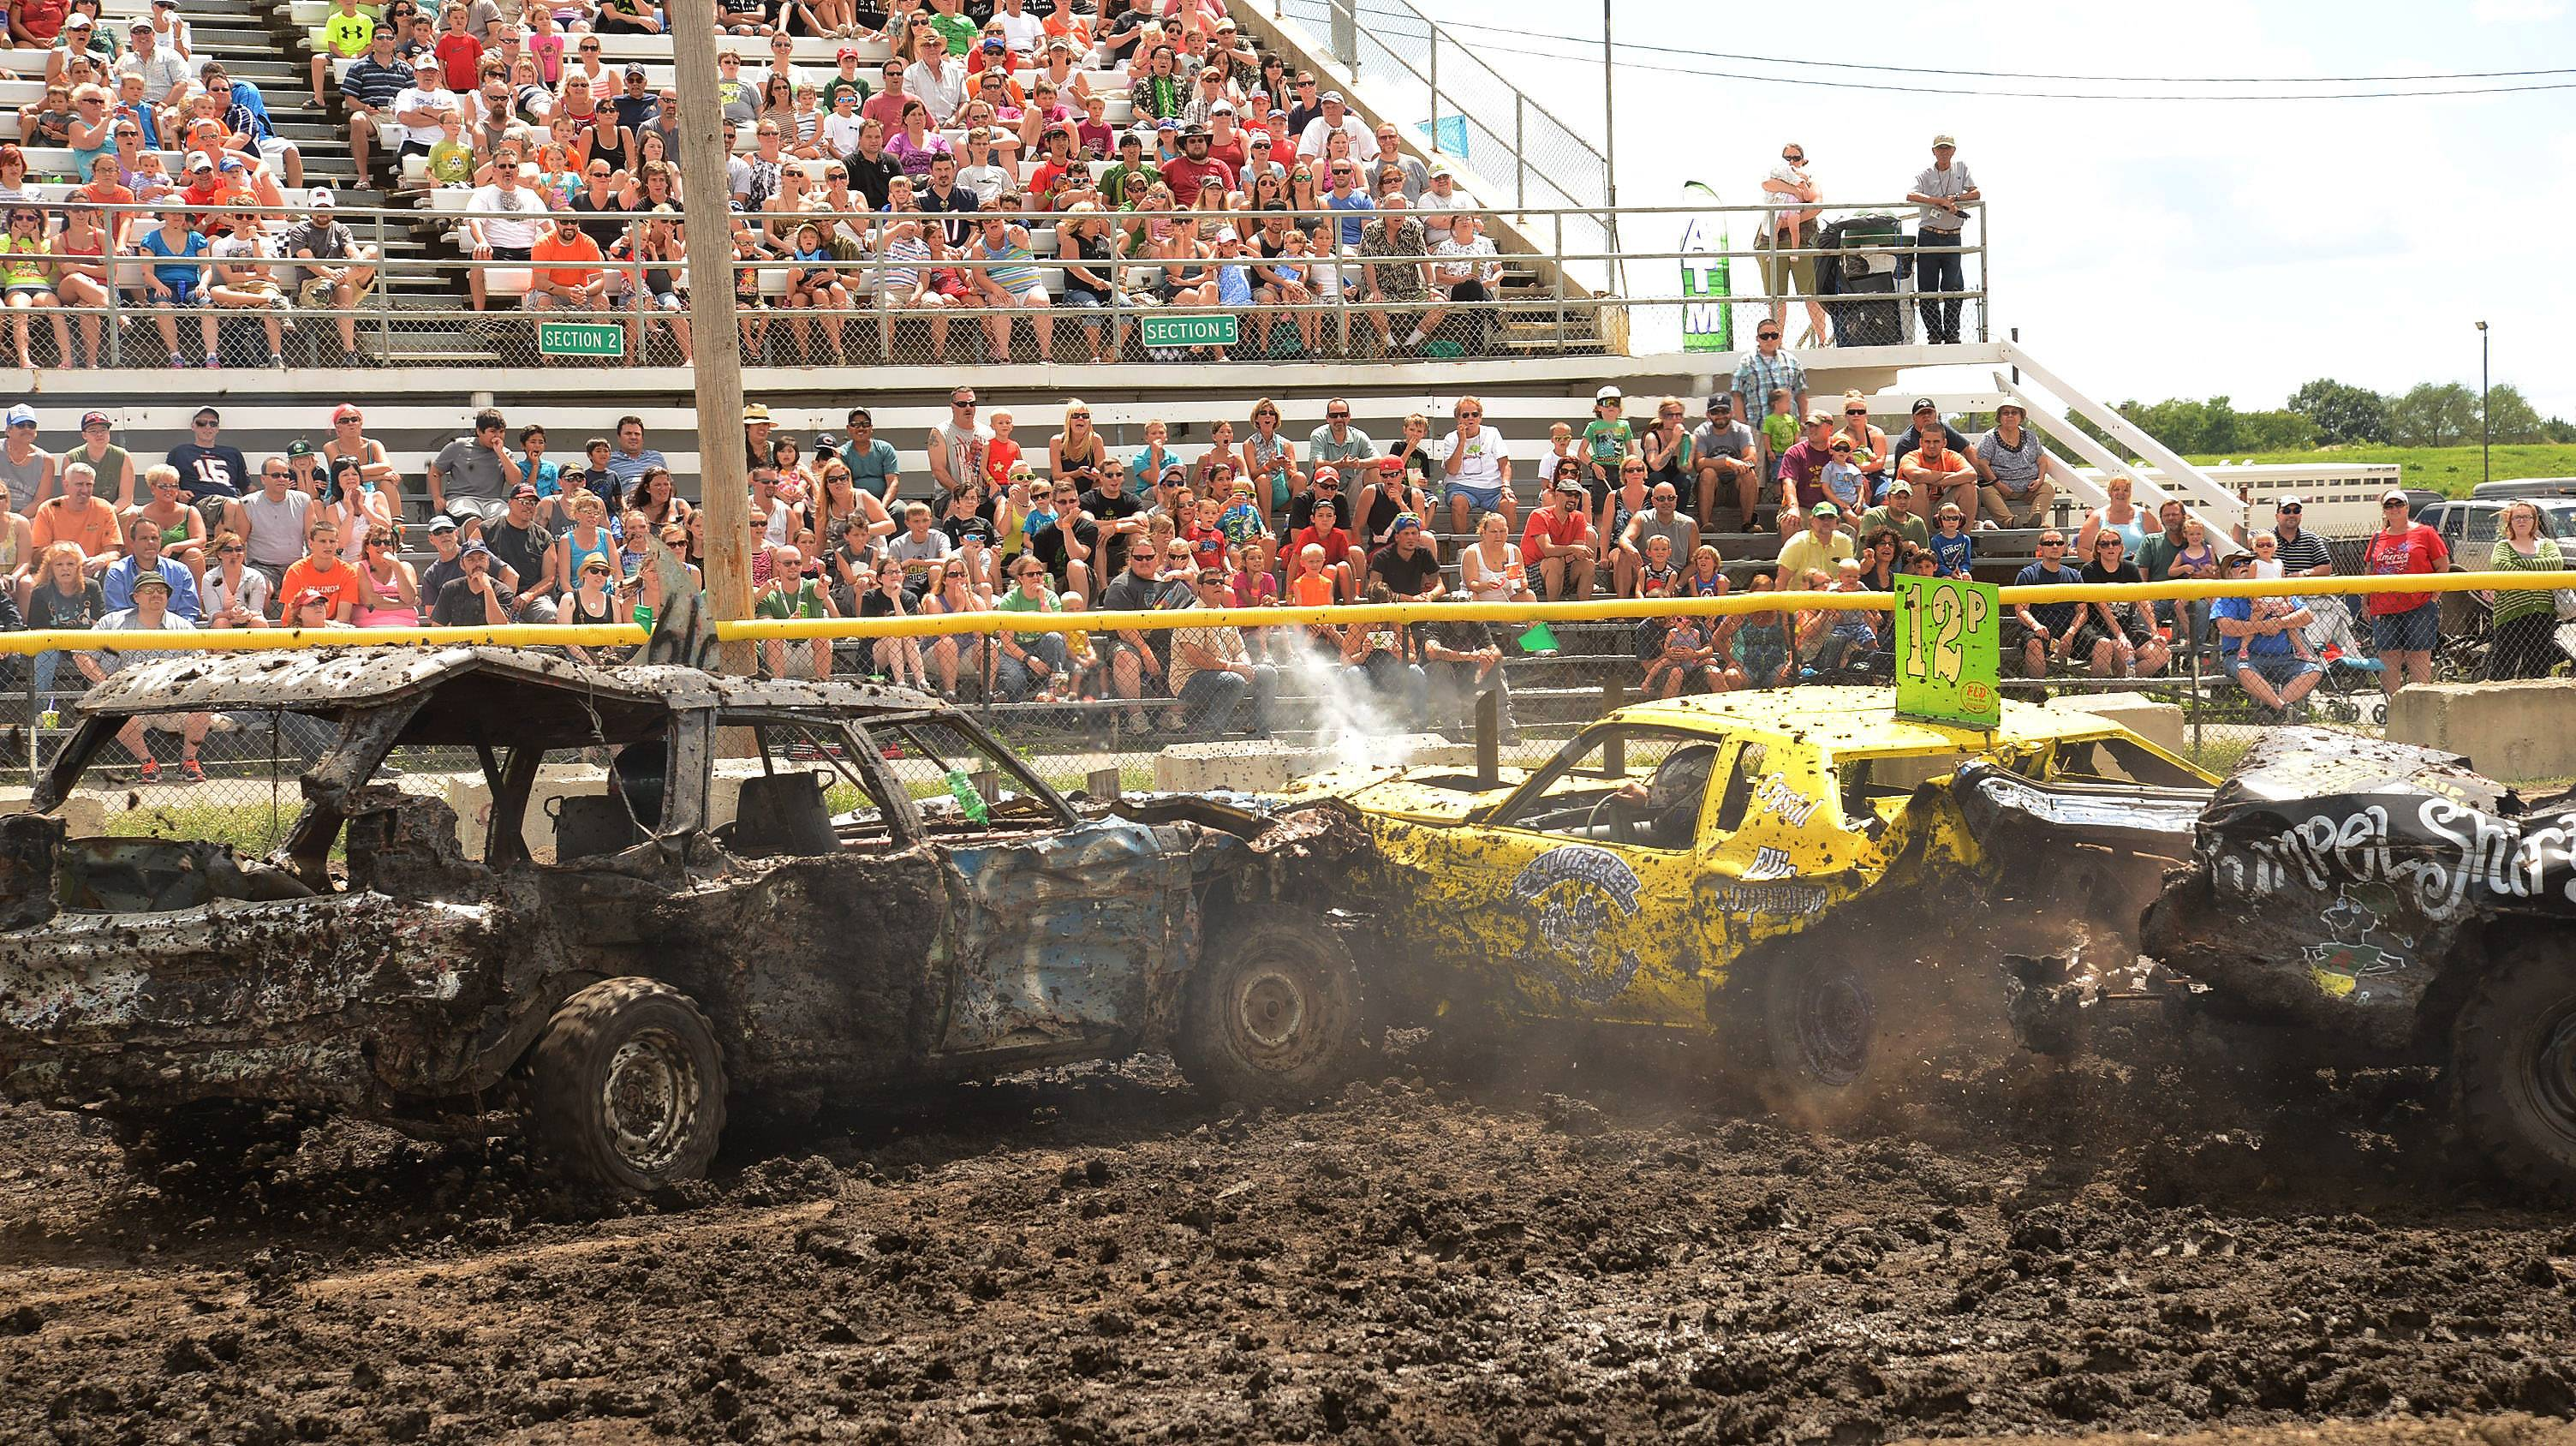 From left, Ray Green of Marengo, Patrick Wyller of Wheaton and Jay Oppenheim of Wheaton get tangled up Sunday during the demolition derby on the last day of the DuPage County Fair.